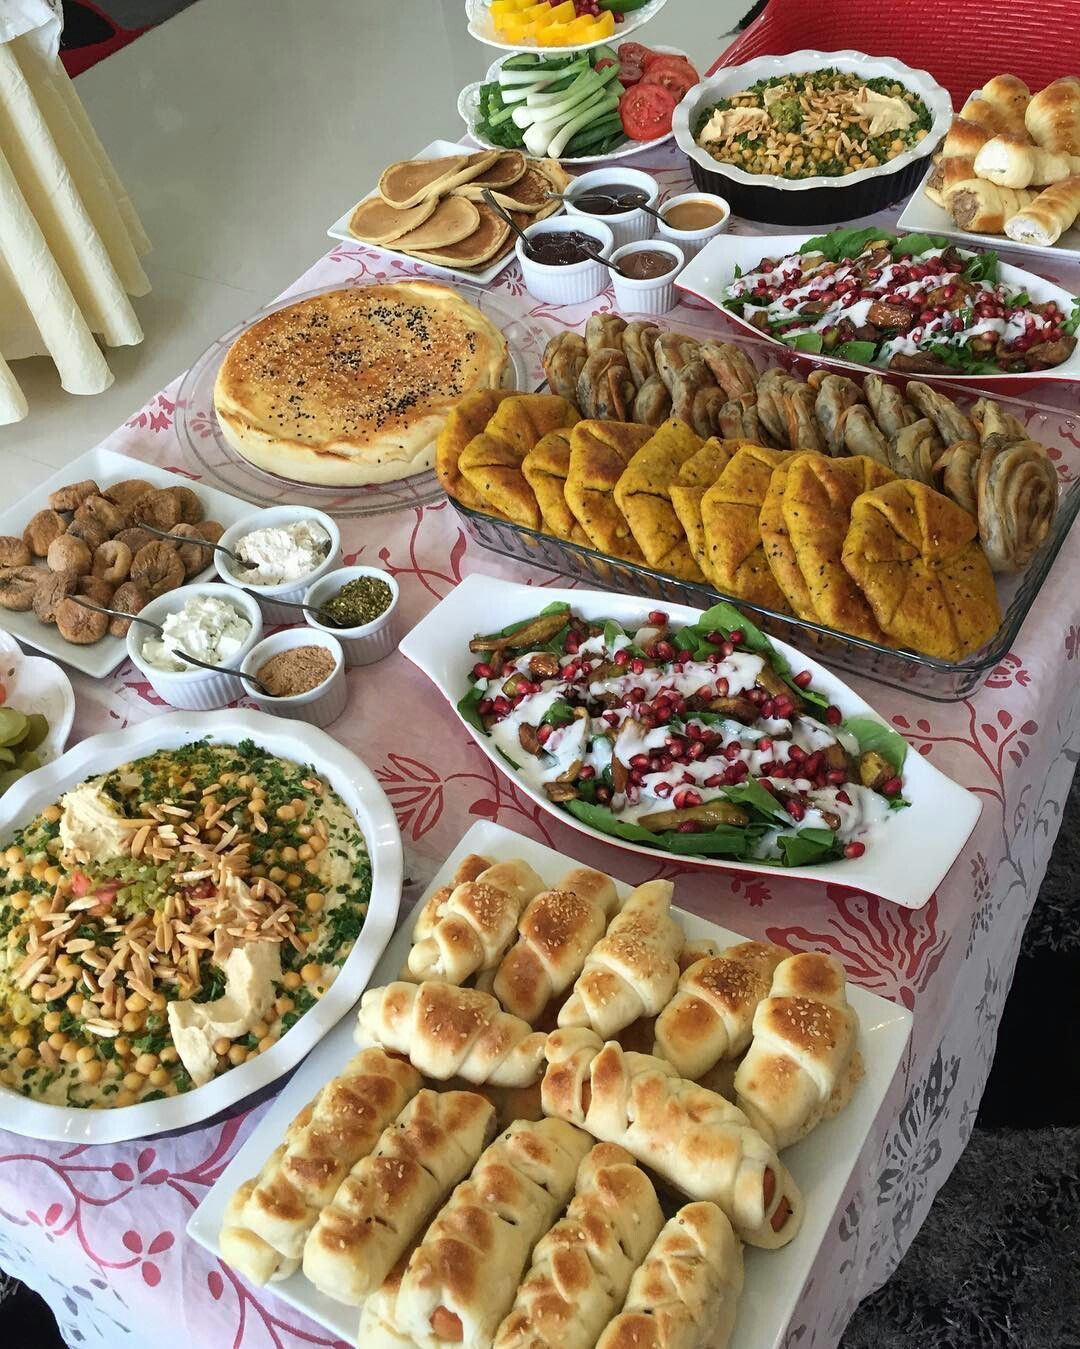 Pin By 1 On Party Pinterest Arabic Food Food And Food Presentation